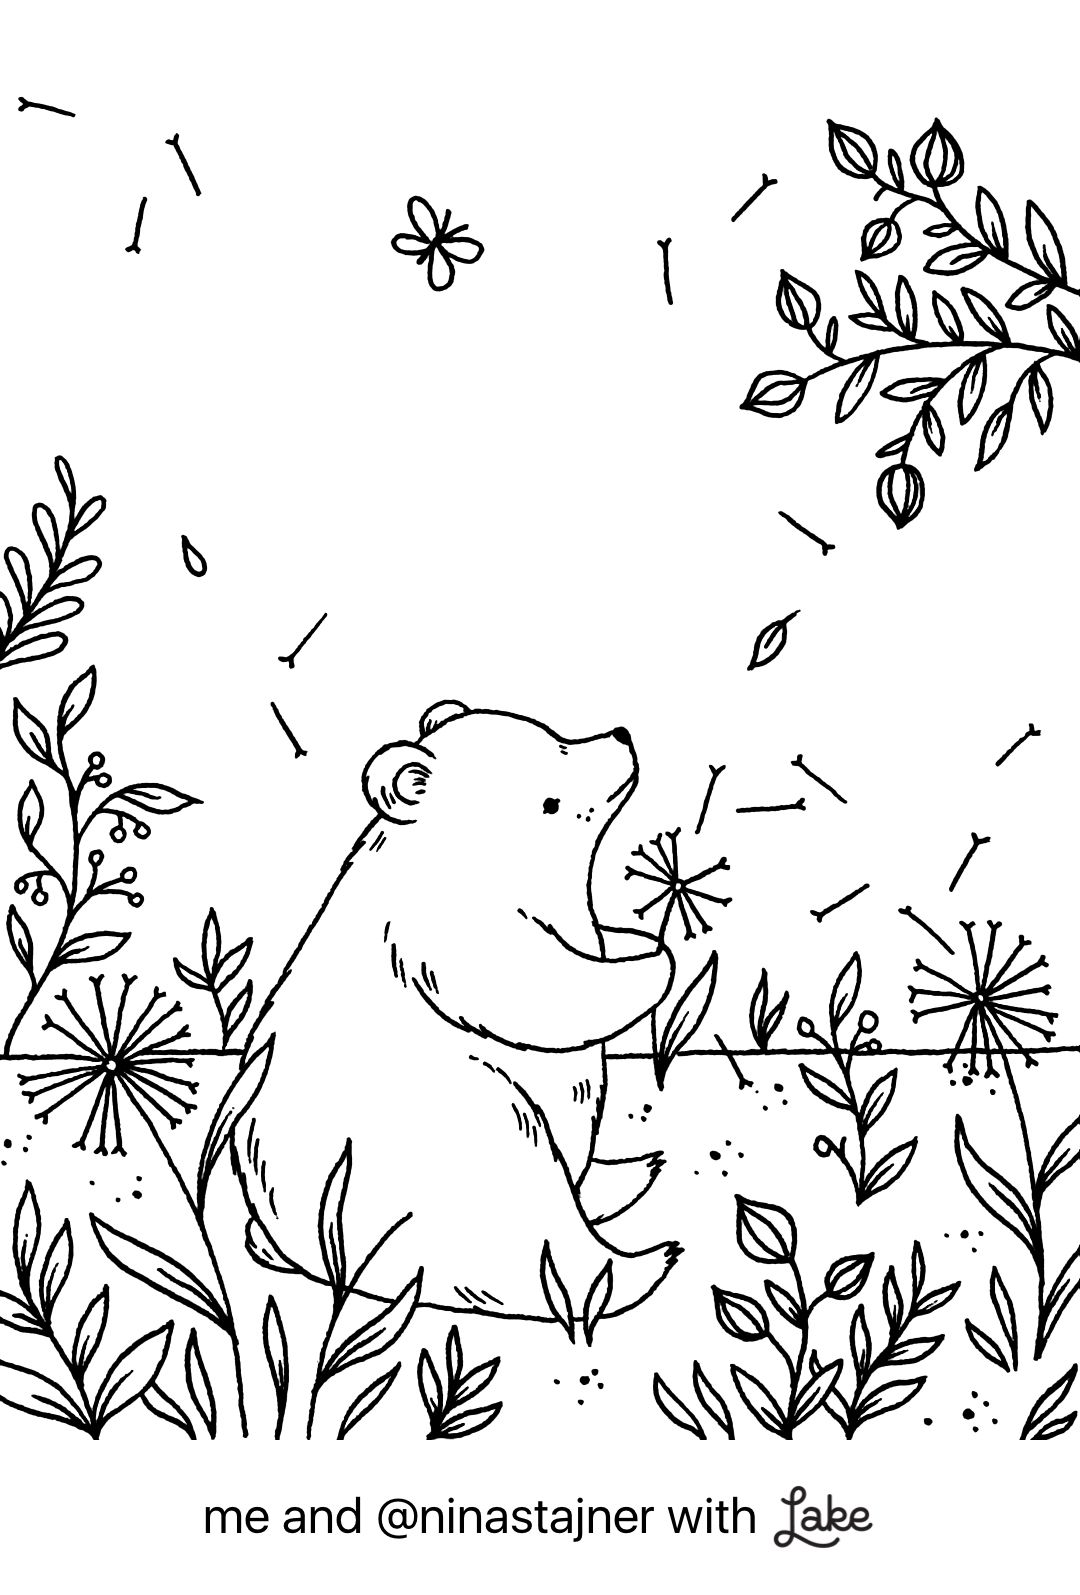 Coloring Page from Lake Coloring App Coloring Pages